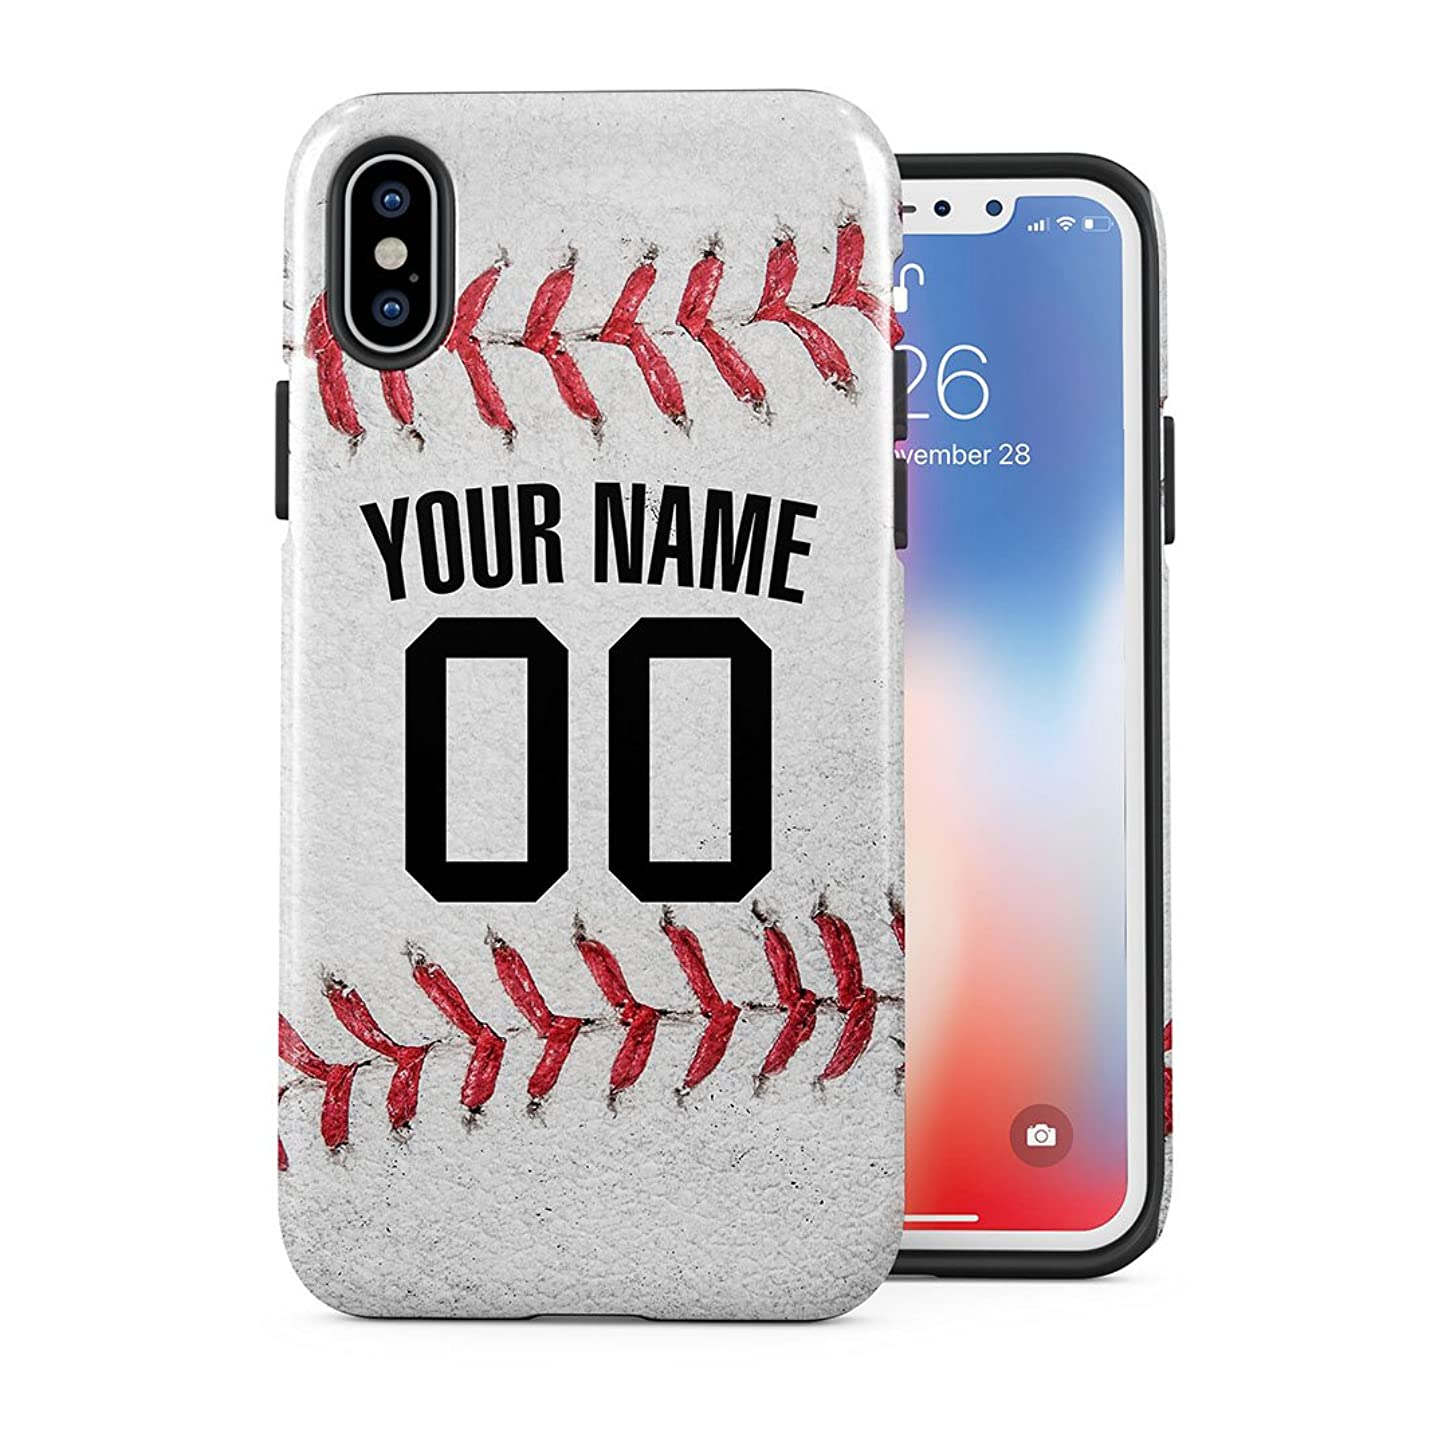 Baseball Personalised Customizable Custom Name Initial Text Baseball Ball Create Your Own Sports Gift Present iPhone Xs Max Case 2 Piece Dual Layer PC + TPU Heavy Duty Protection Cover jngwmludtft0